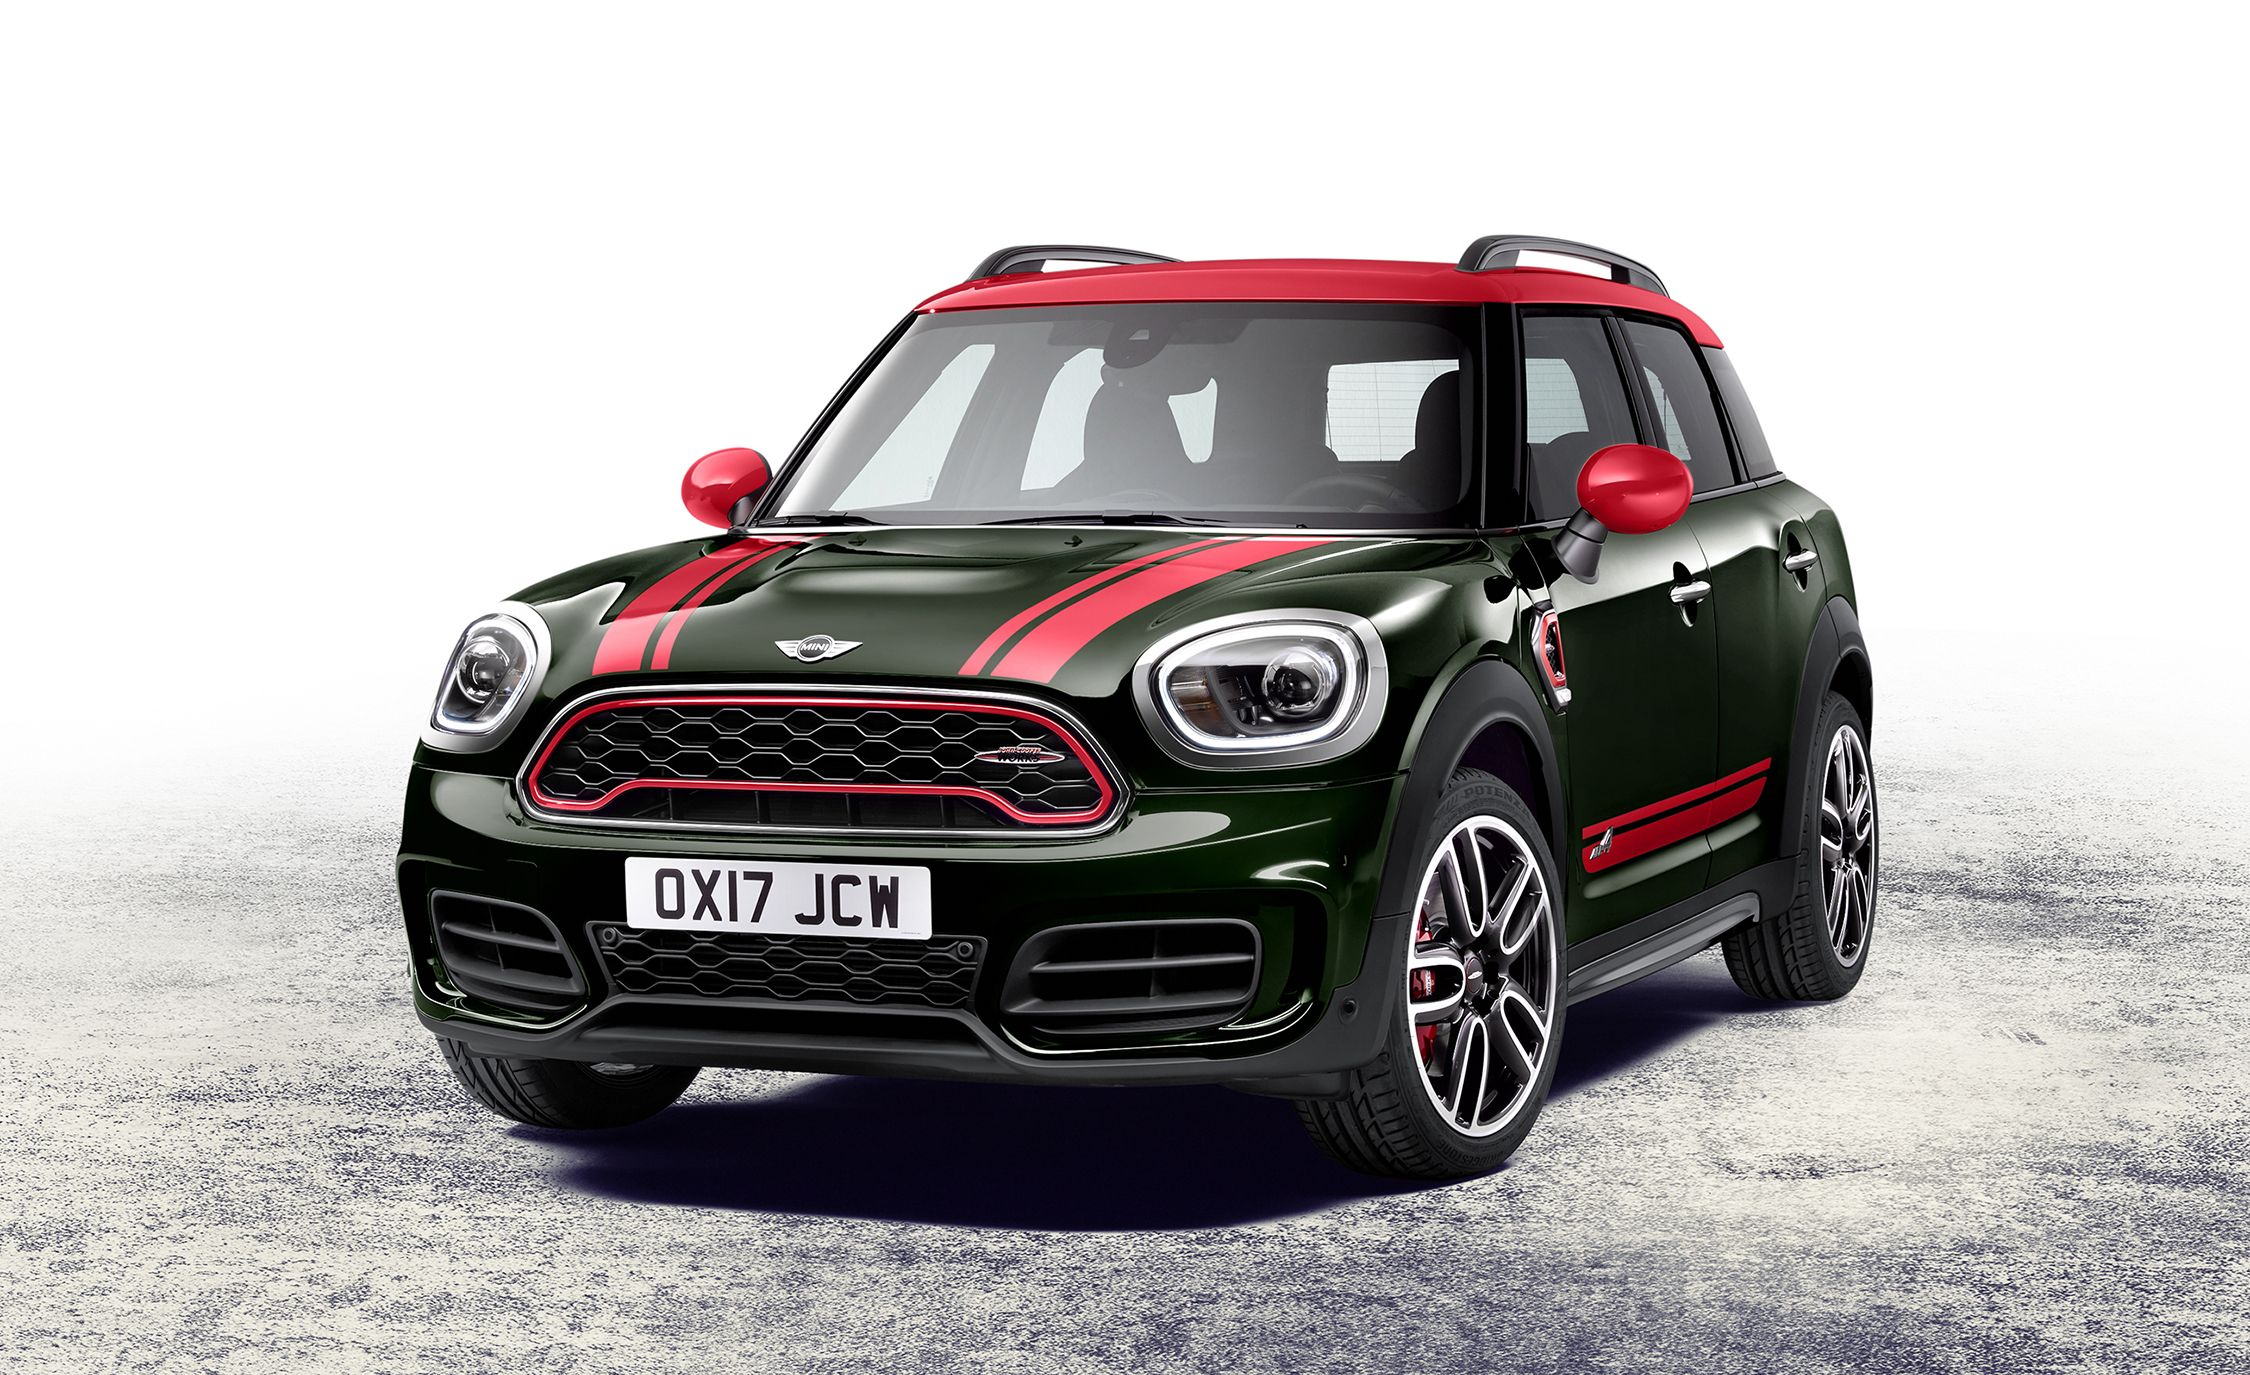 2018 Mini Jcw Countryman Photos And Info 8211 News 8211 Car